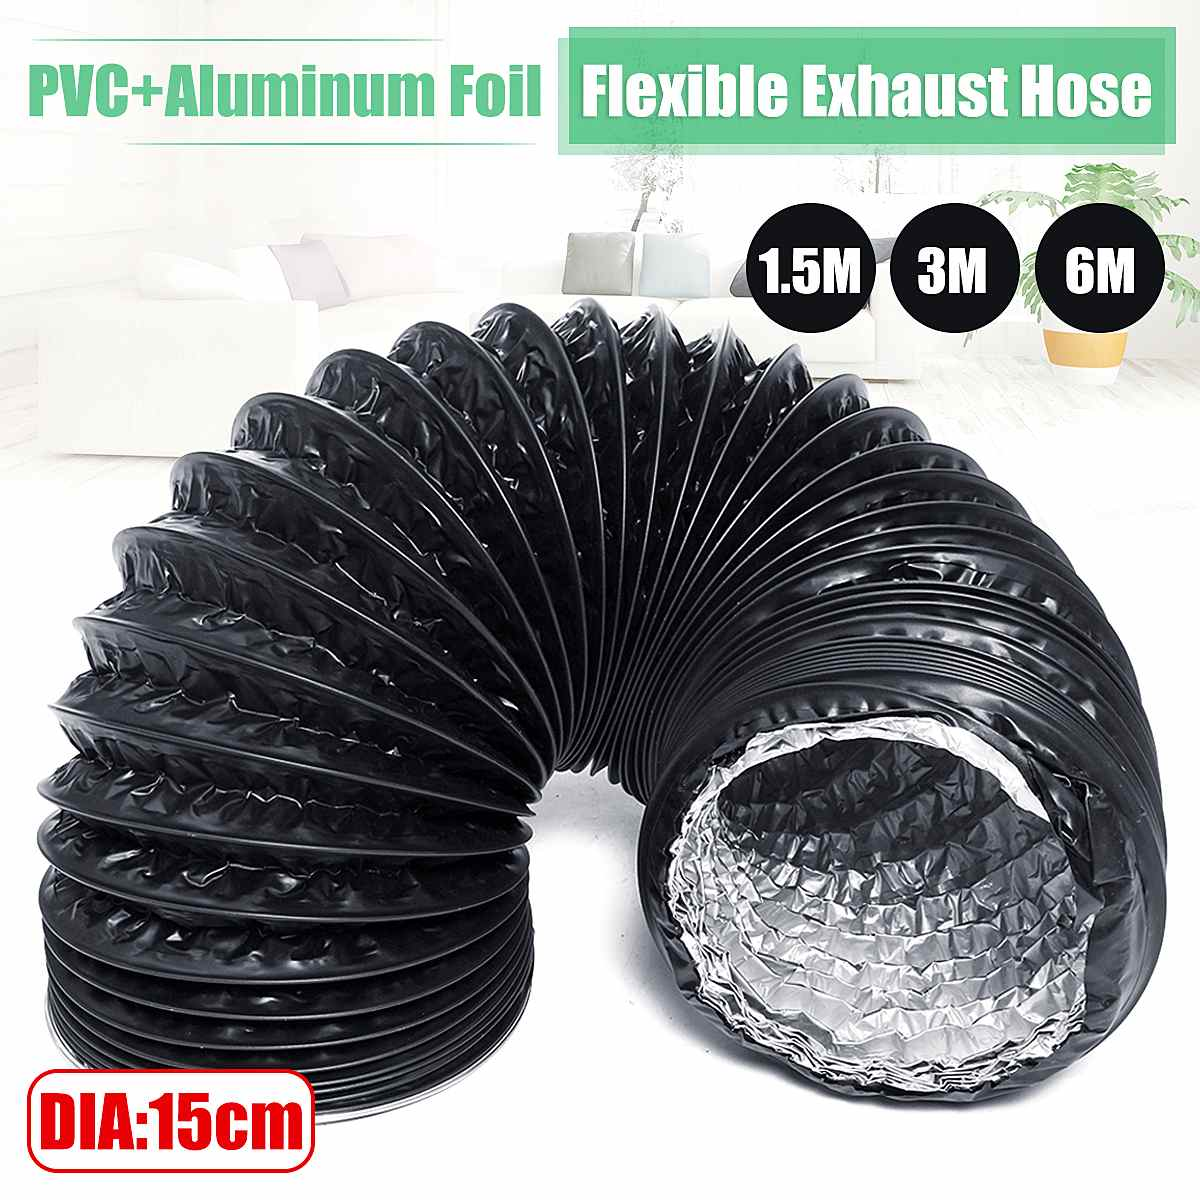 Flexible Exhaust Tube DIA 15cm 1.5M/3M/6M PVC Aluminum Air Ventilation System Ventilator Hose Pipe Kitchen Bathroom Accessories